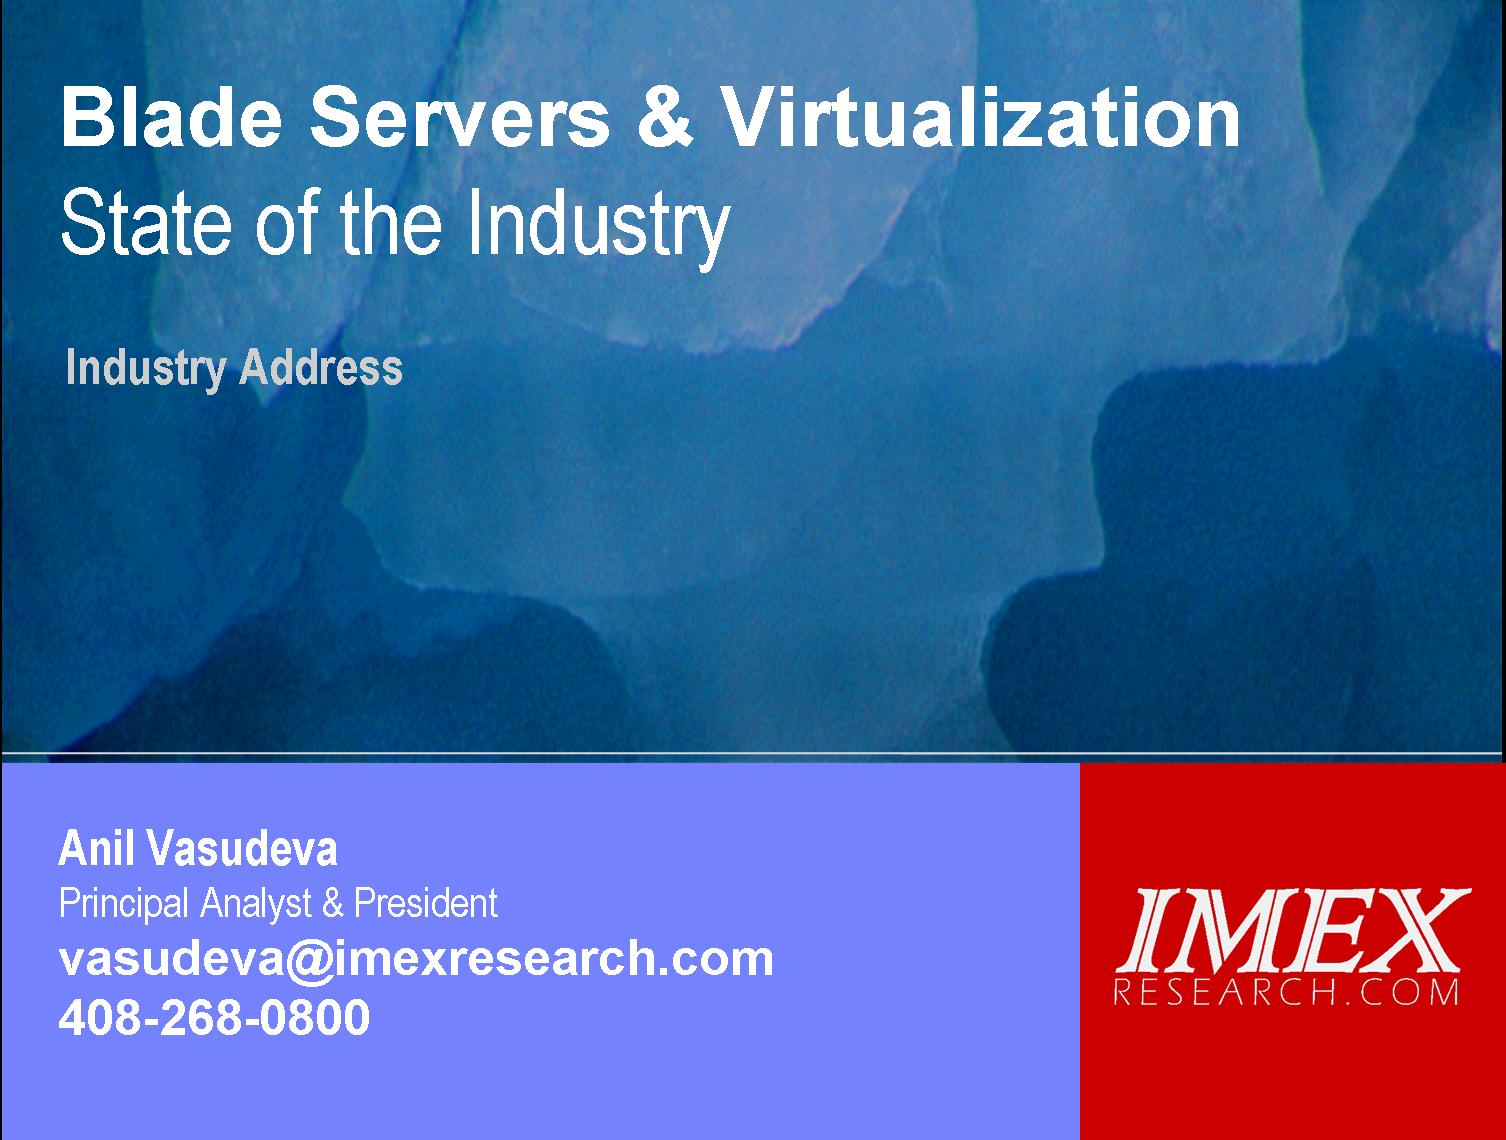 blade server research paper Research your choices here explore all workstations  matchless desktop performance  and energy efficiency reduces operating costs vs 1u rack servers and older blade servers  access all the product-related white papers, case studies, videos and more view library.